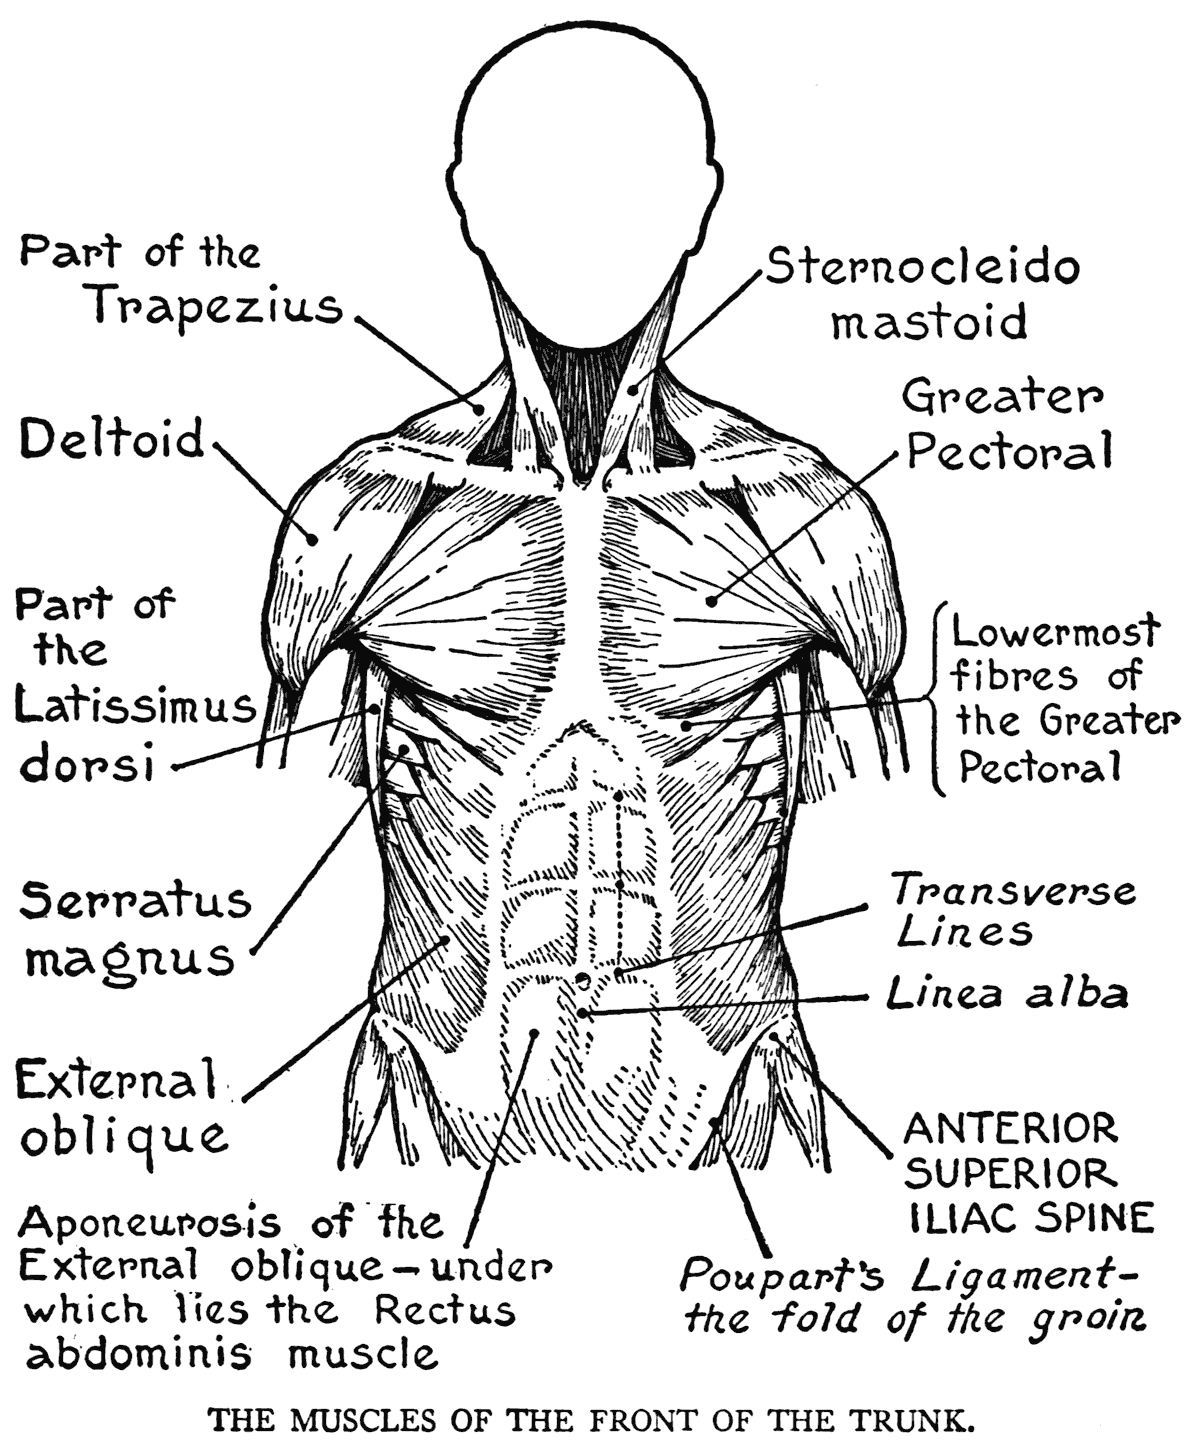 anatomy coloring book online 65 remarkable the anatomy coloring book pdf download photo anatomy coloring book online